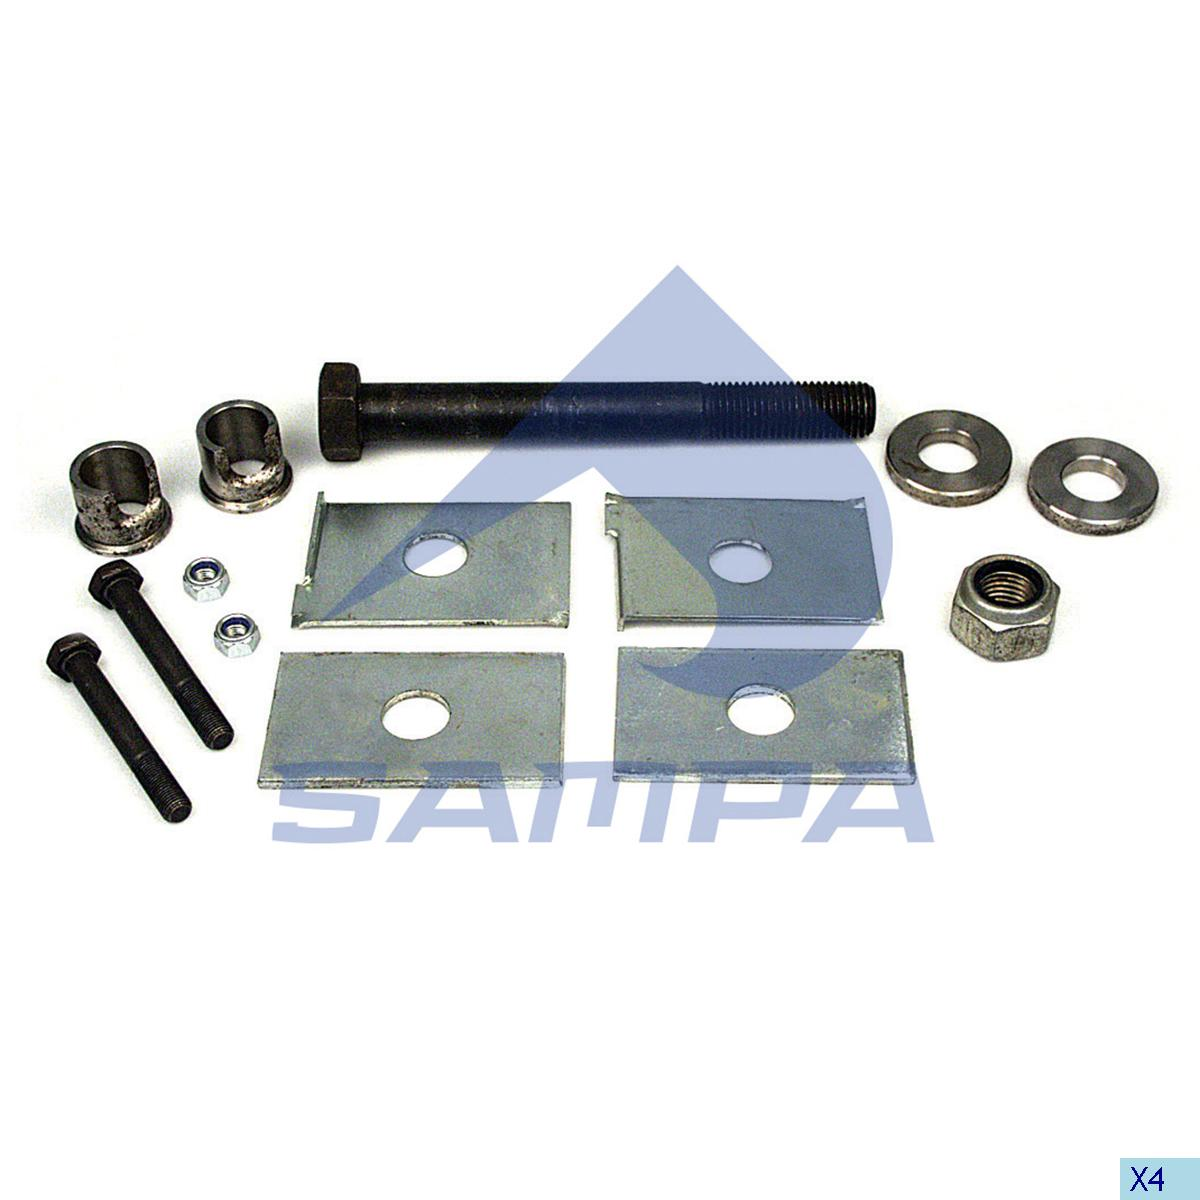 Repair Kit, Spring, Sauer, Suspension